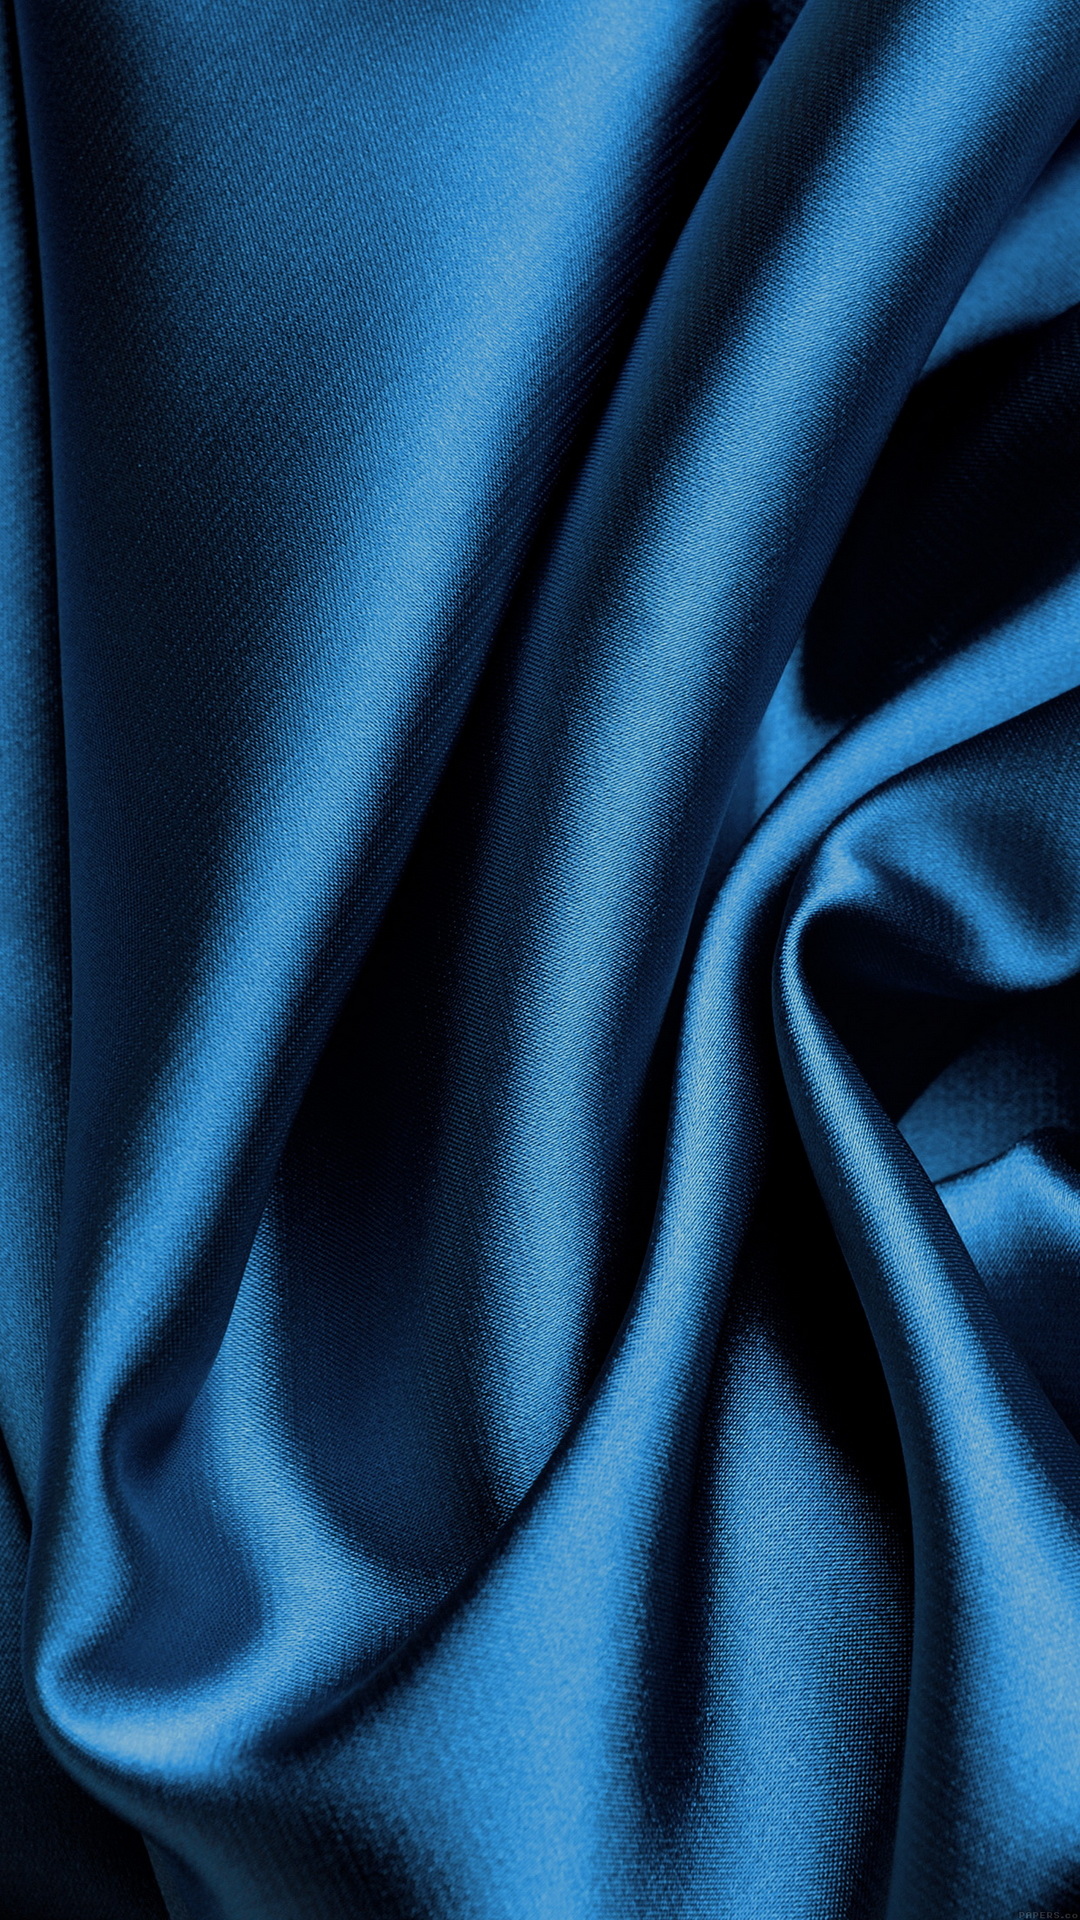 Blue silk fabric best htc one m9 wallpapers free to for Silk wallpaper